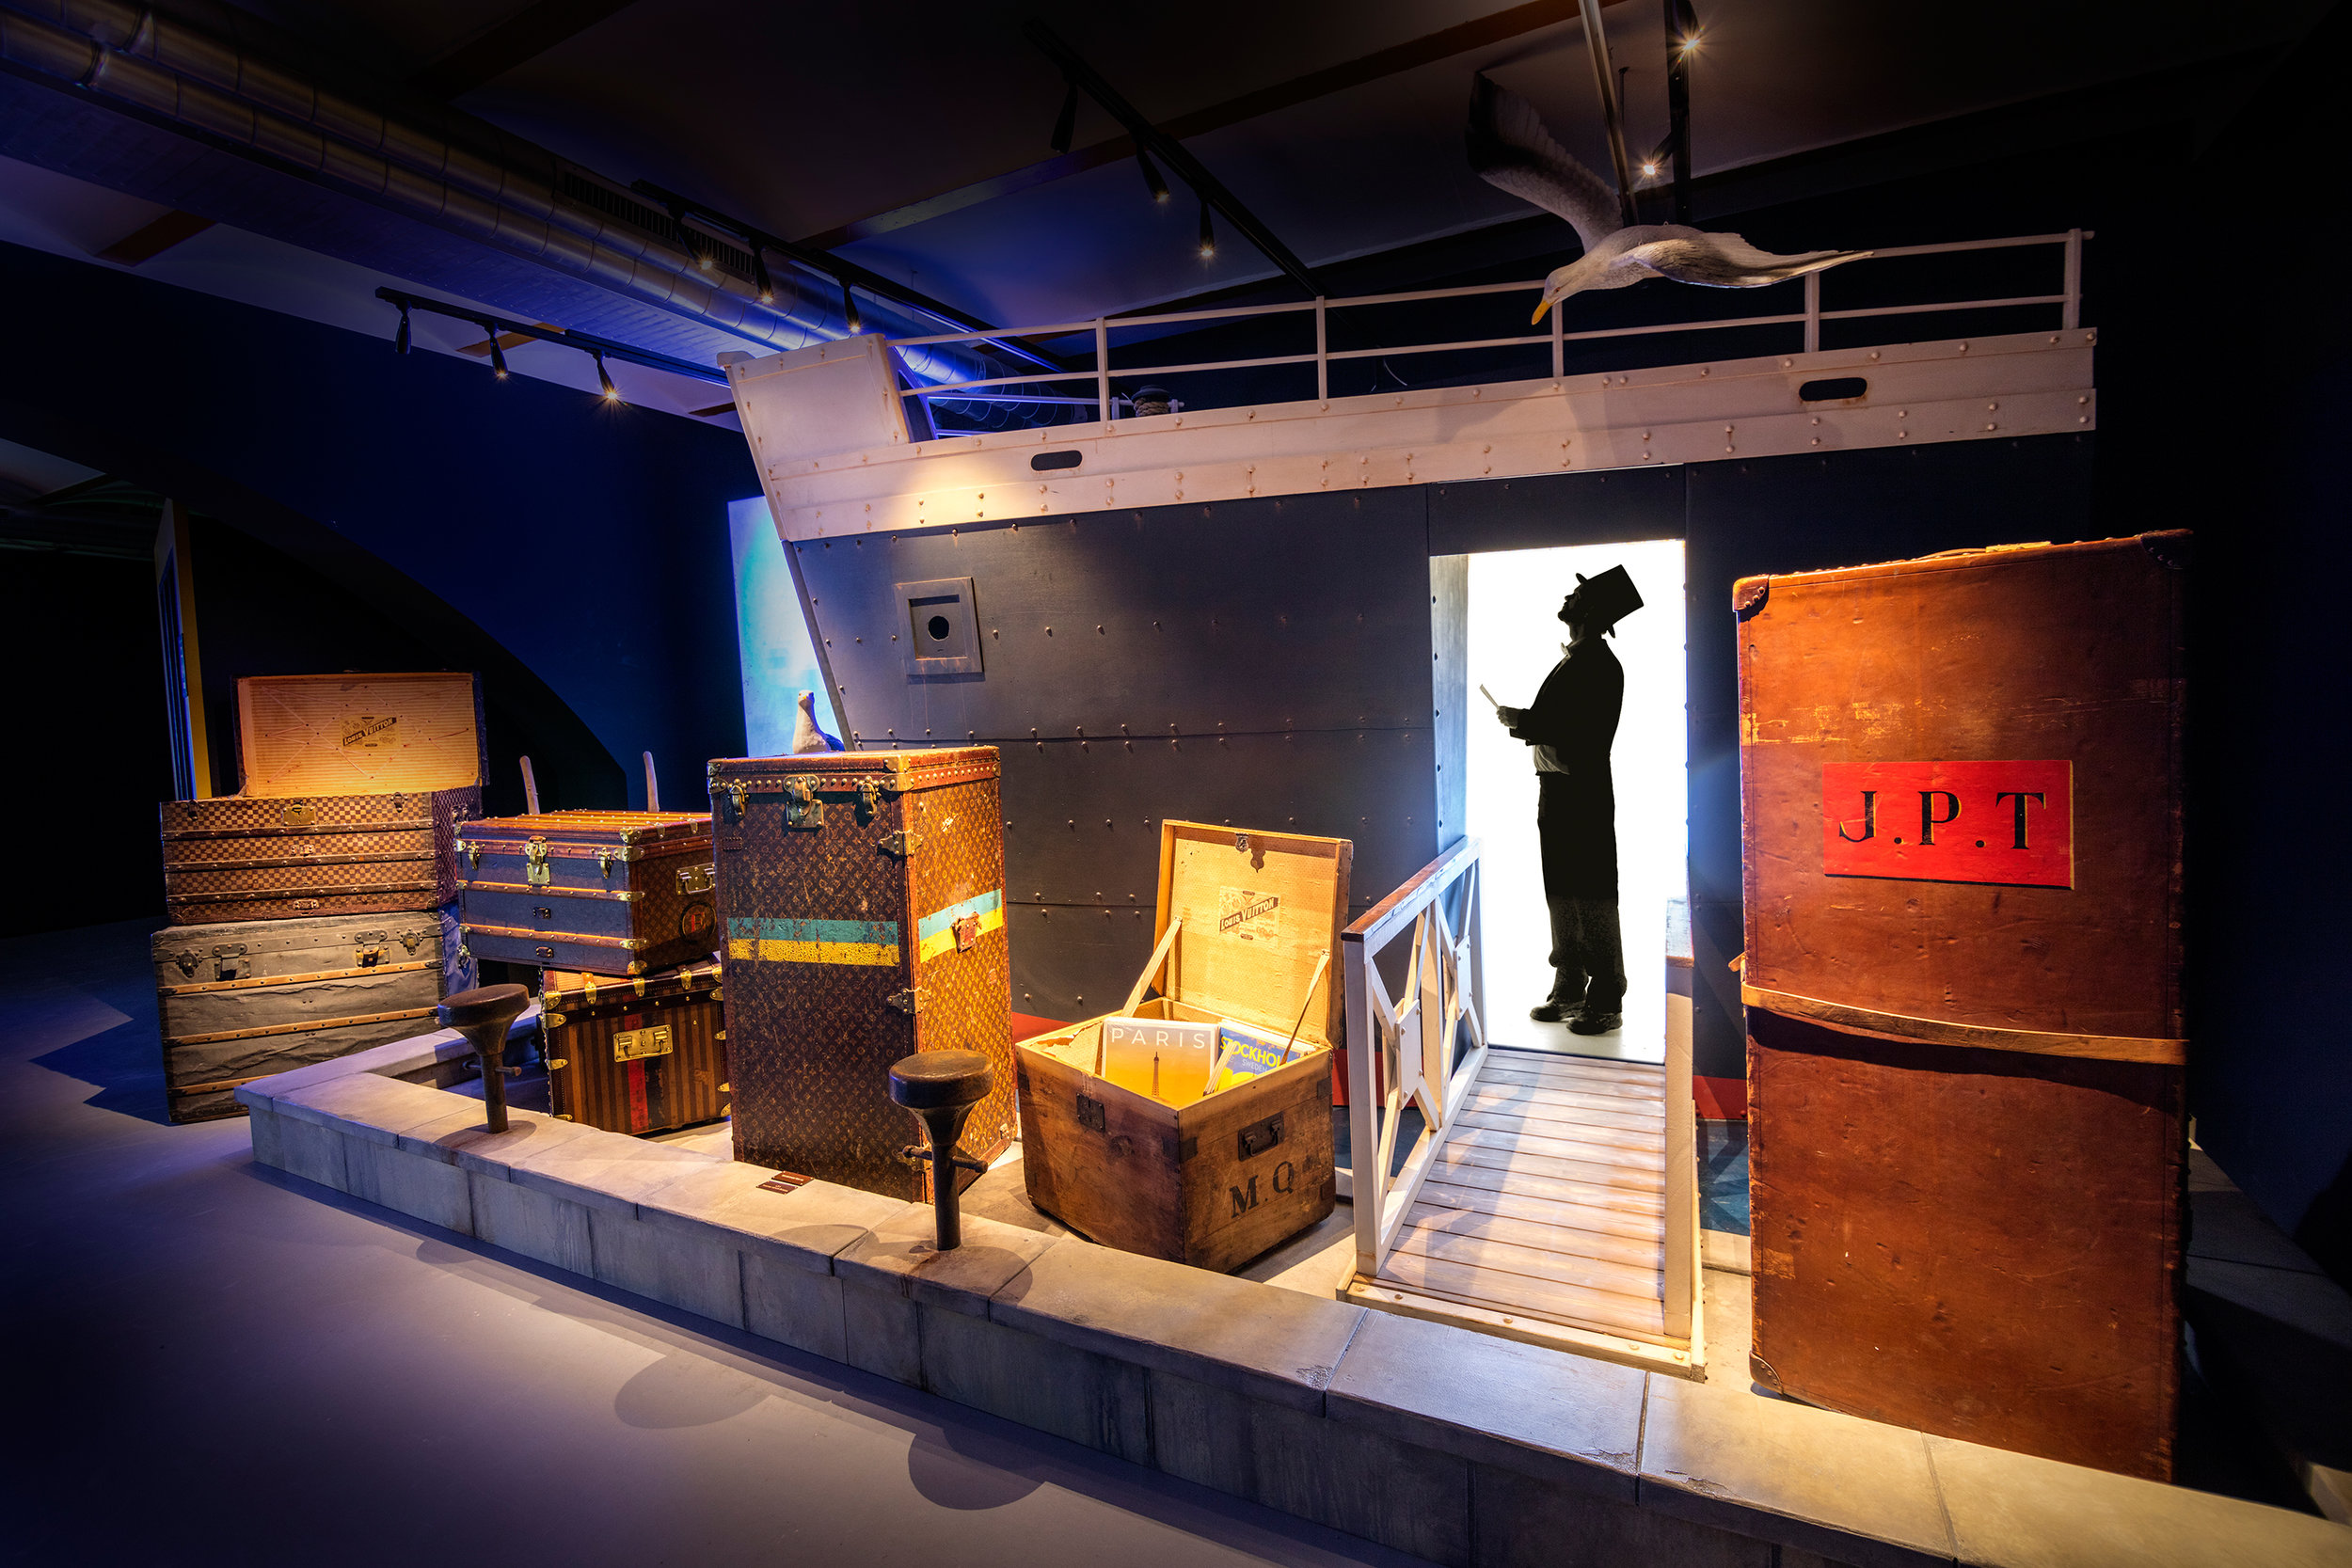 LEGENDARY TRUNKS THE EXHIBITION LOUIS VUITTON <strong>| A fascinating journey through five generations of Louis Vuitton's trunks</strong>